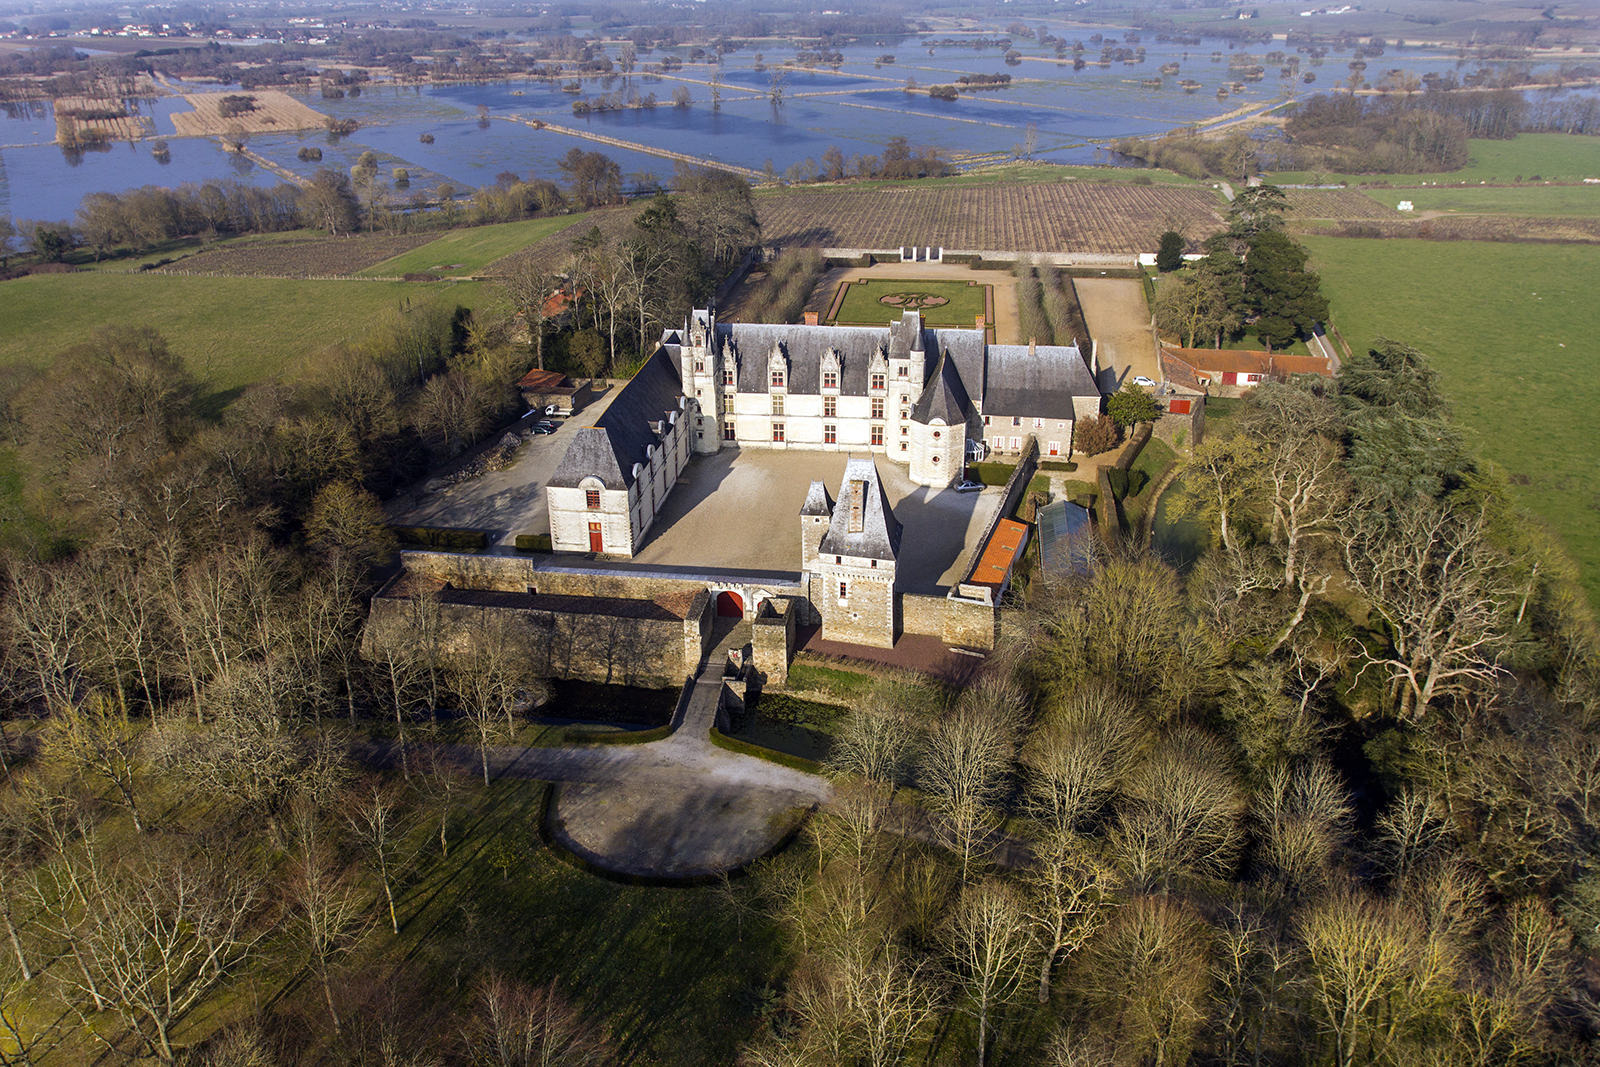 Aerial Photo of Chateau de Goulaine vineyards in Loire Valley